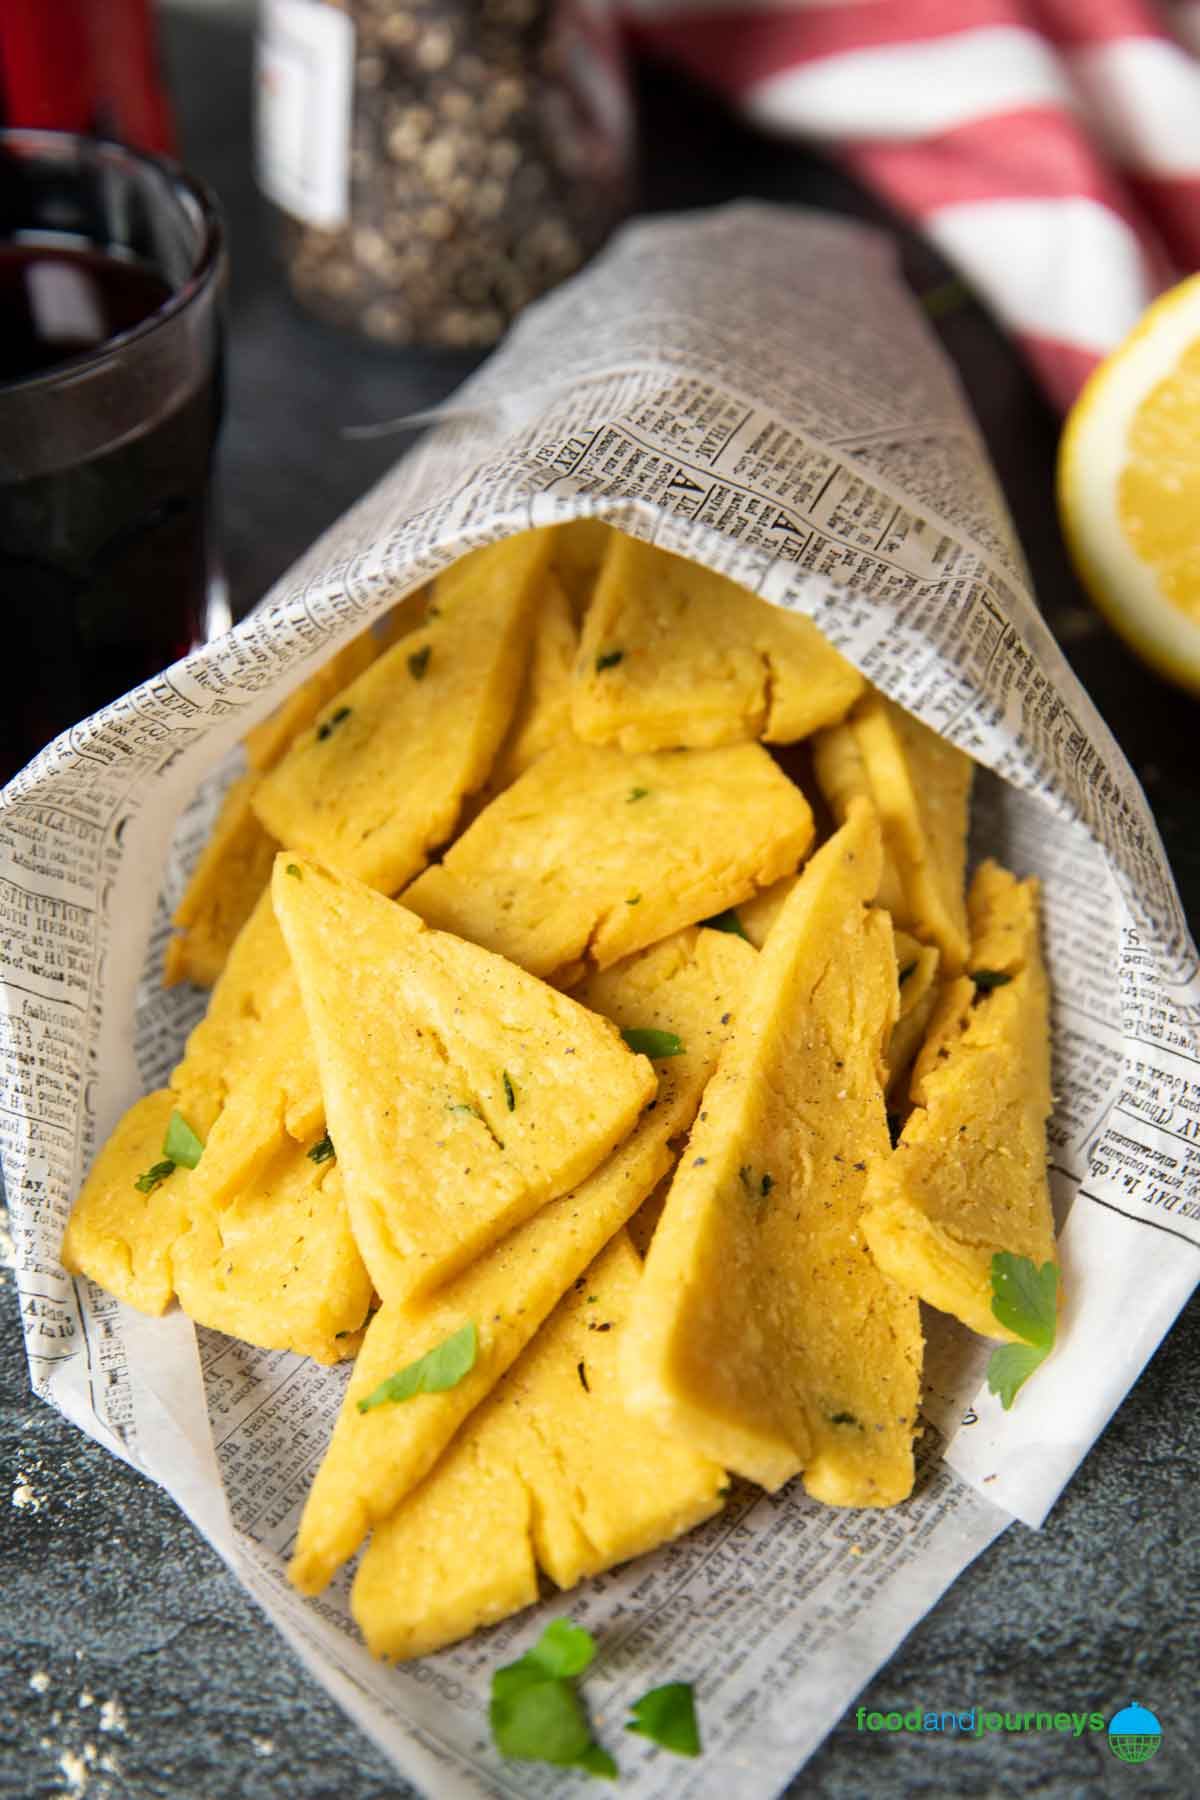 Panelle served in a paper cone, straight out of the fryer, garnish with ground pepper and fresh parsley.